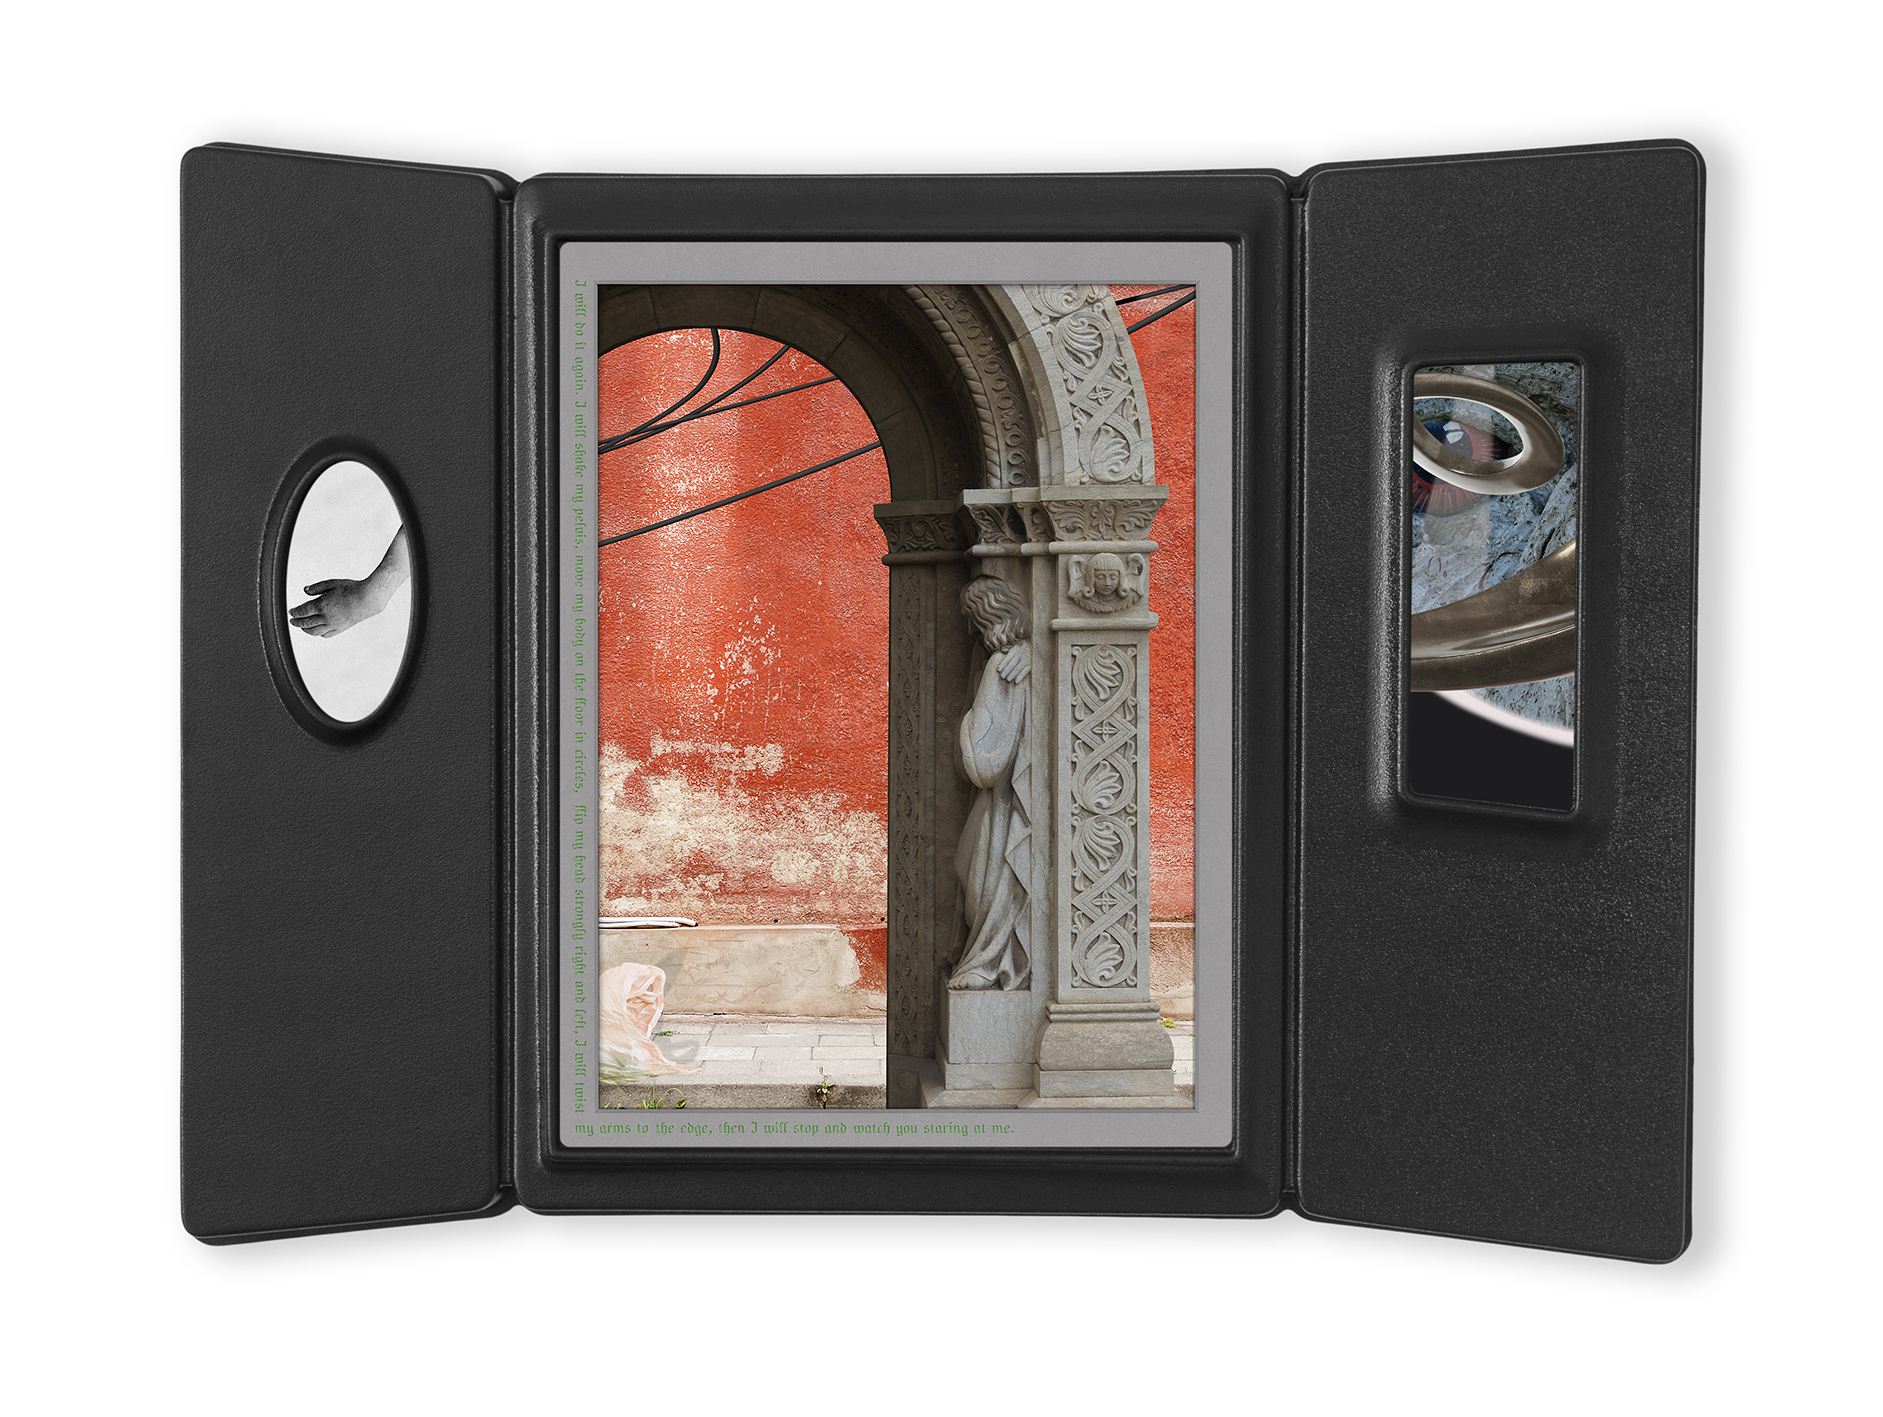 Catherine (case 1001) 2020, inkjet prints, acrylic face mount, vacuum formed frame, 51.5x70x5 cm